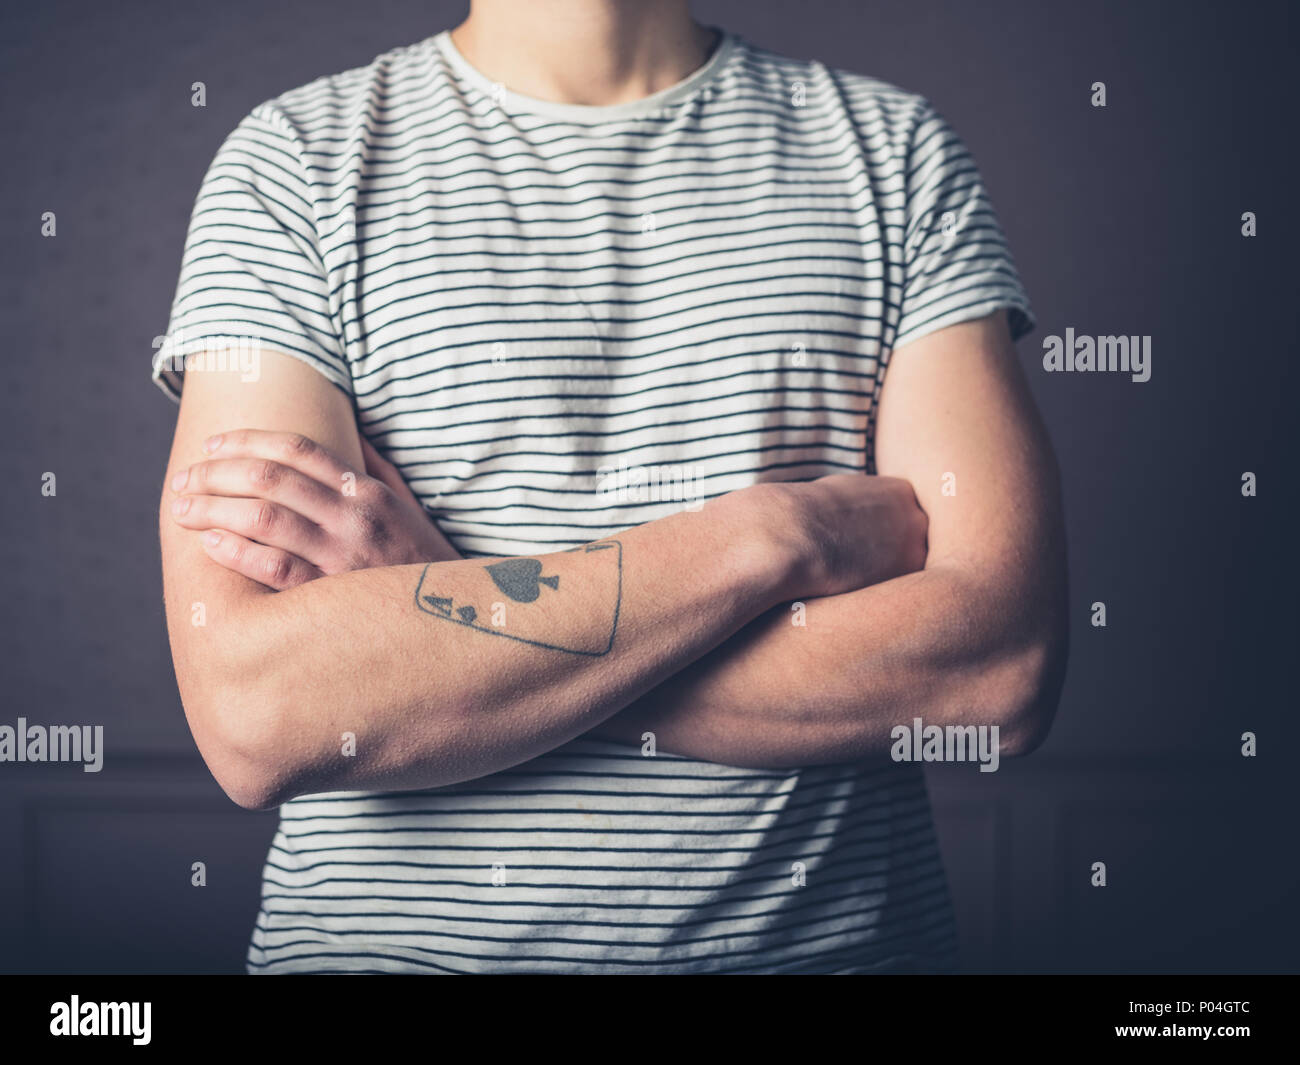 A young man with a tattoo is crossing his arms Stock Photo ... 18f4c852f3c3